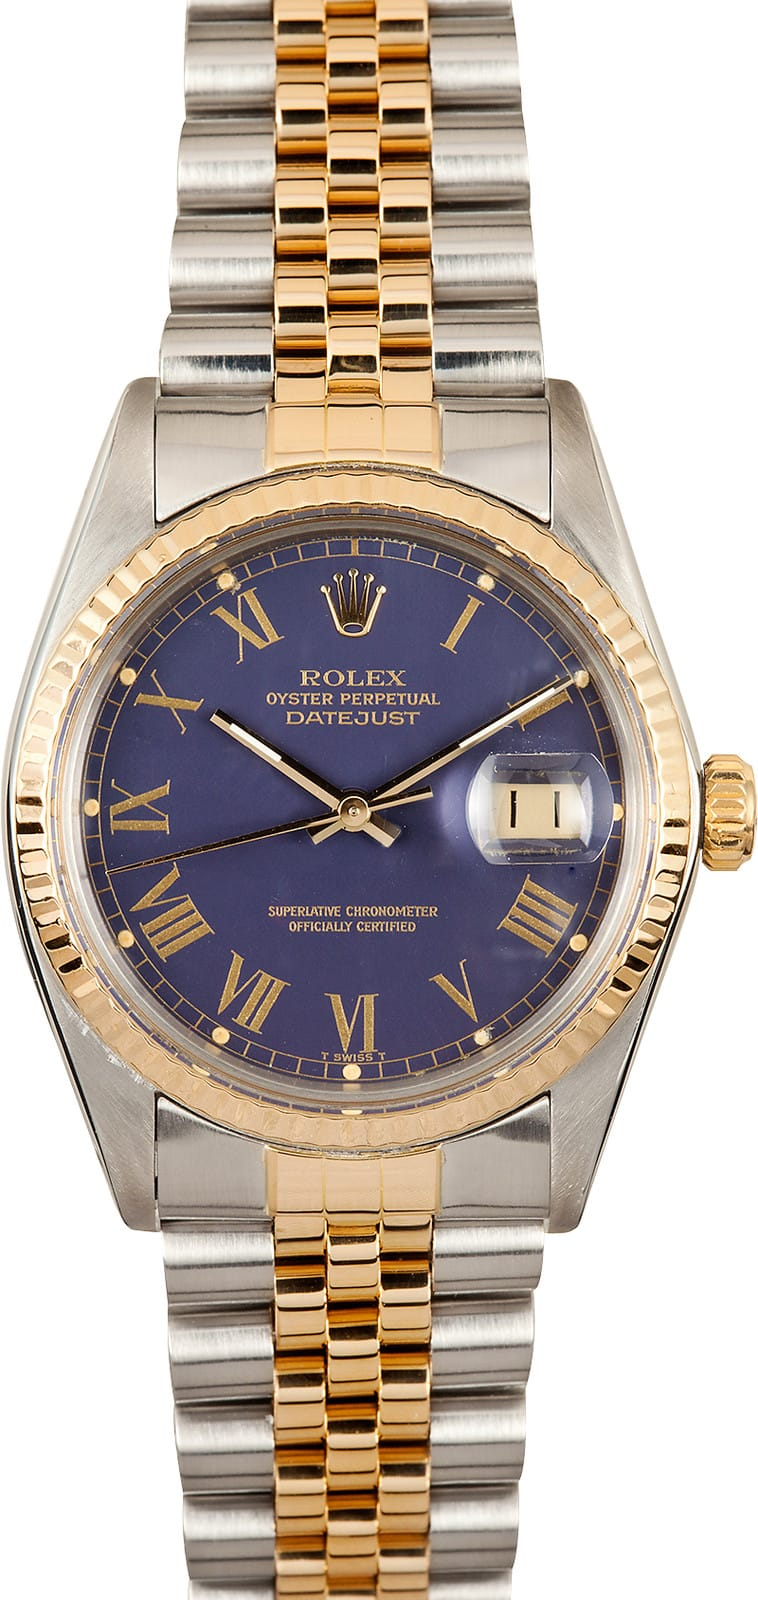 7a031974efa Rolex DateJust 16013 Blue Dial Stainless Steel - Save Instantly!